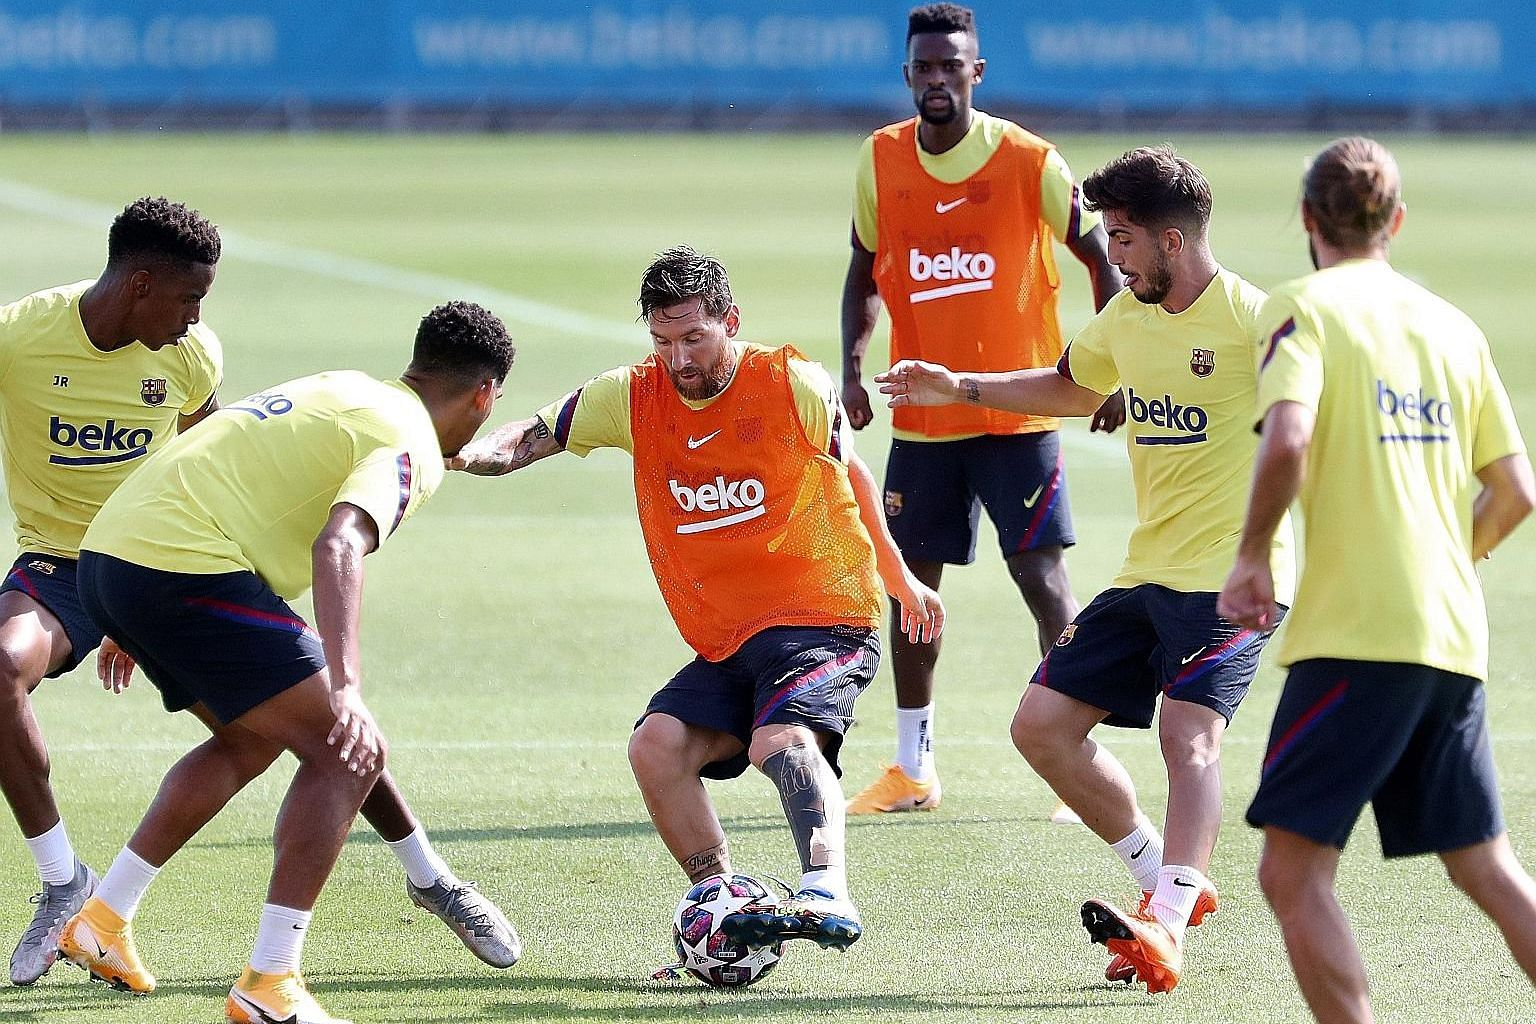 Barcelona captain Lionel Messi at a training session ahead of their Champions League quarter-final clash with Bayern Munich in Lisbon. Germany international Leon Goretzka says it will take a collective effort from Bayern Munich to stop the gifted Arg